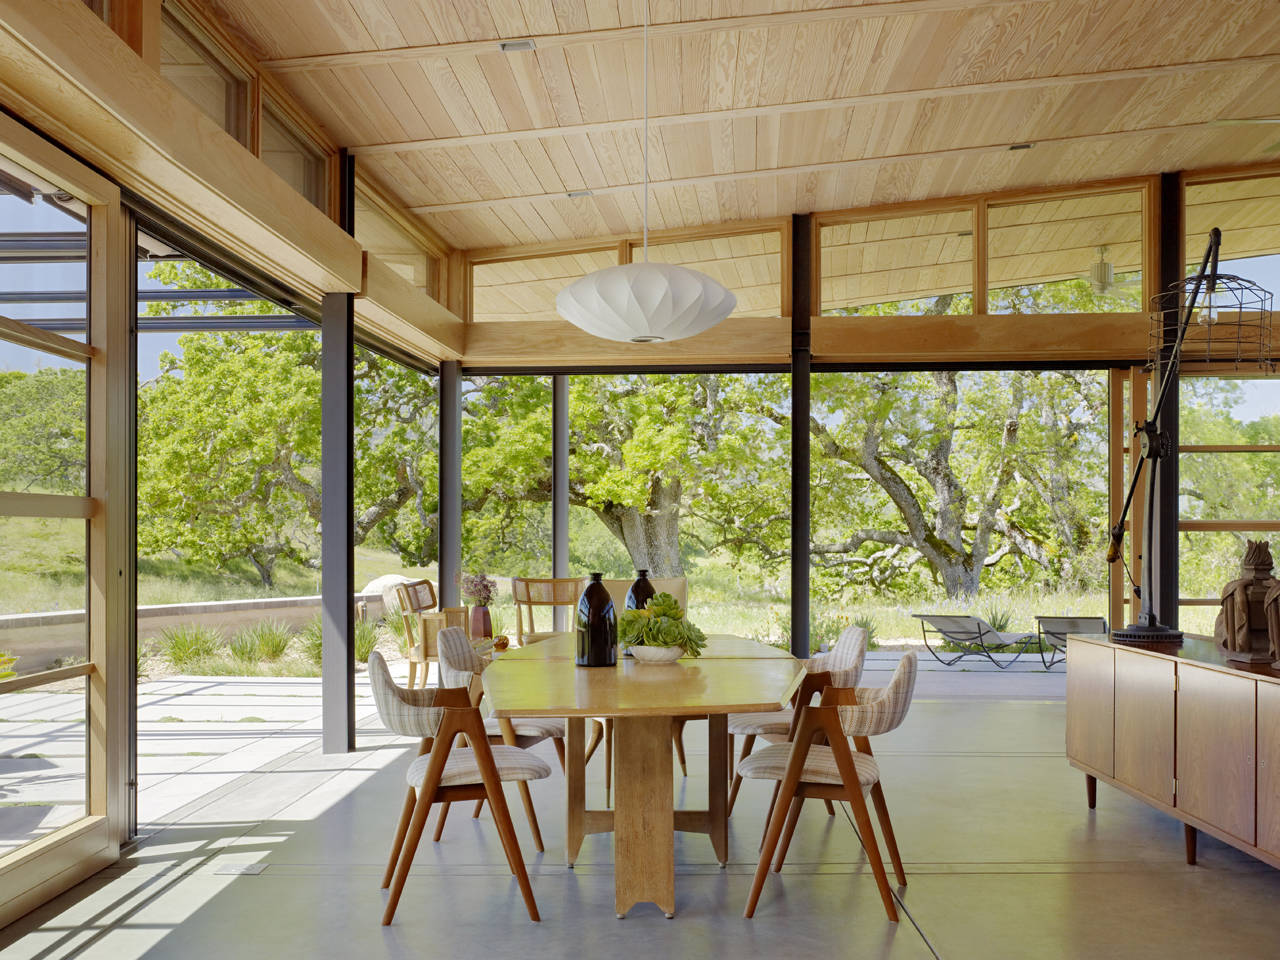 Dining Space, Glass Walls, Caterpillar House in Carmel, California by Feldman Architecture